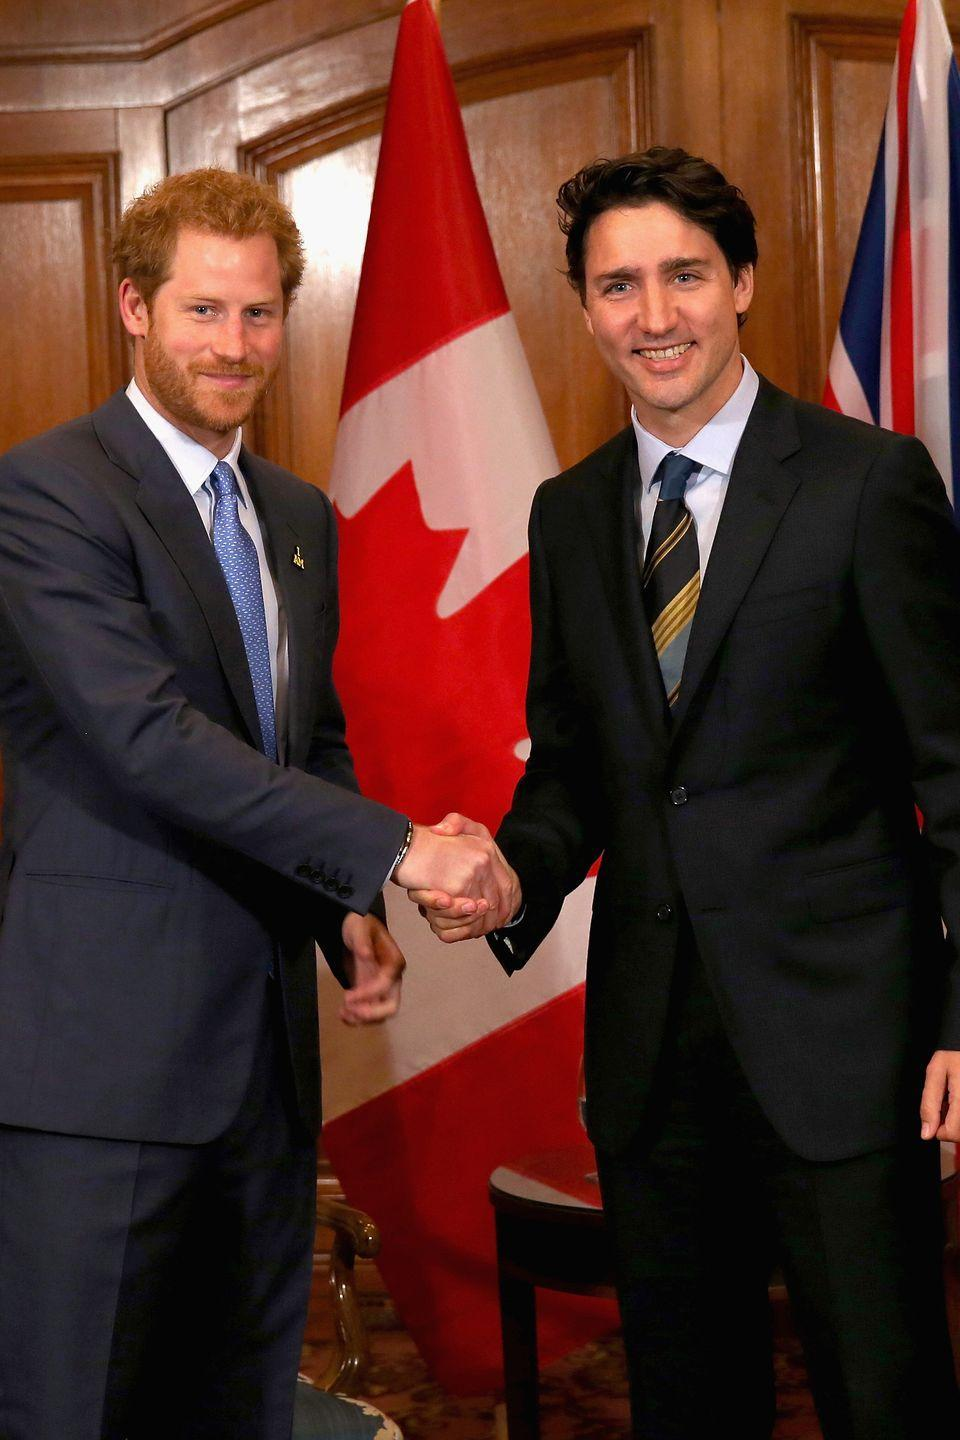 <p>Prince Harry shakes hands with Canadian Prime Minister Justin Trudeau during a meeting in Toronto. </p>